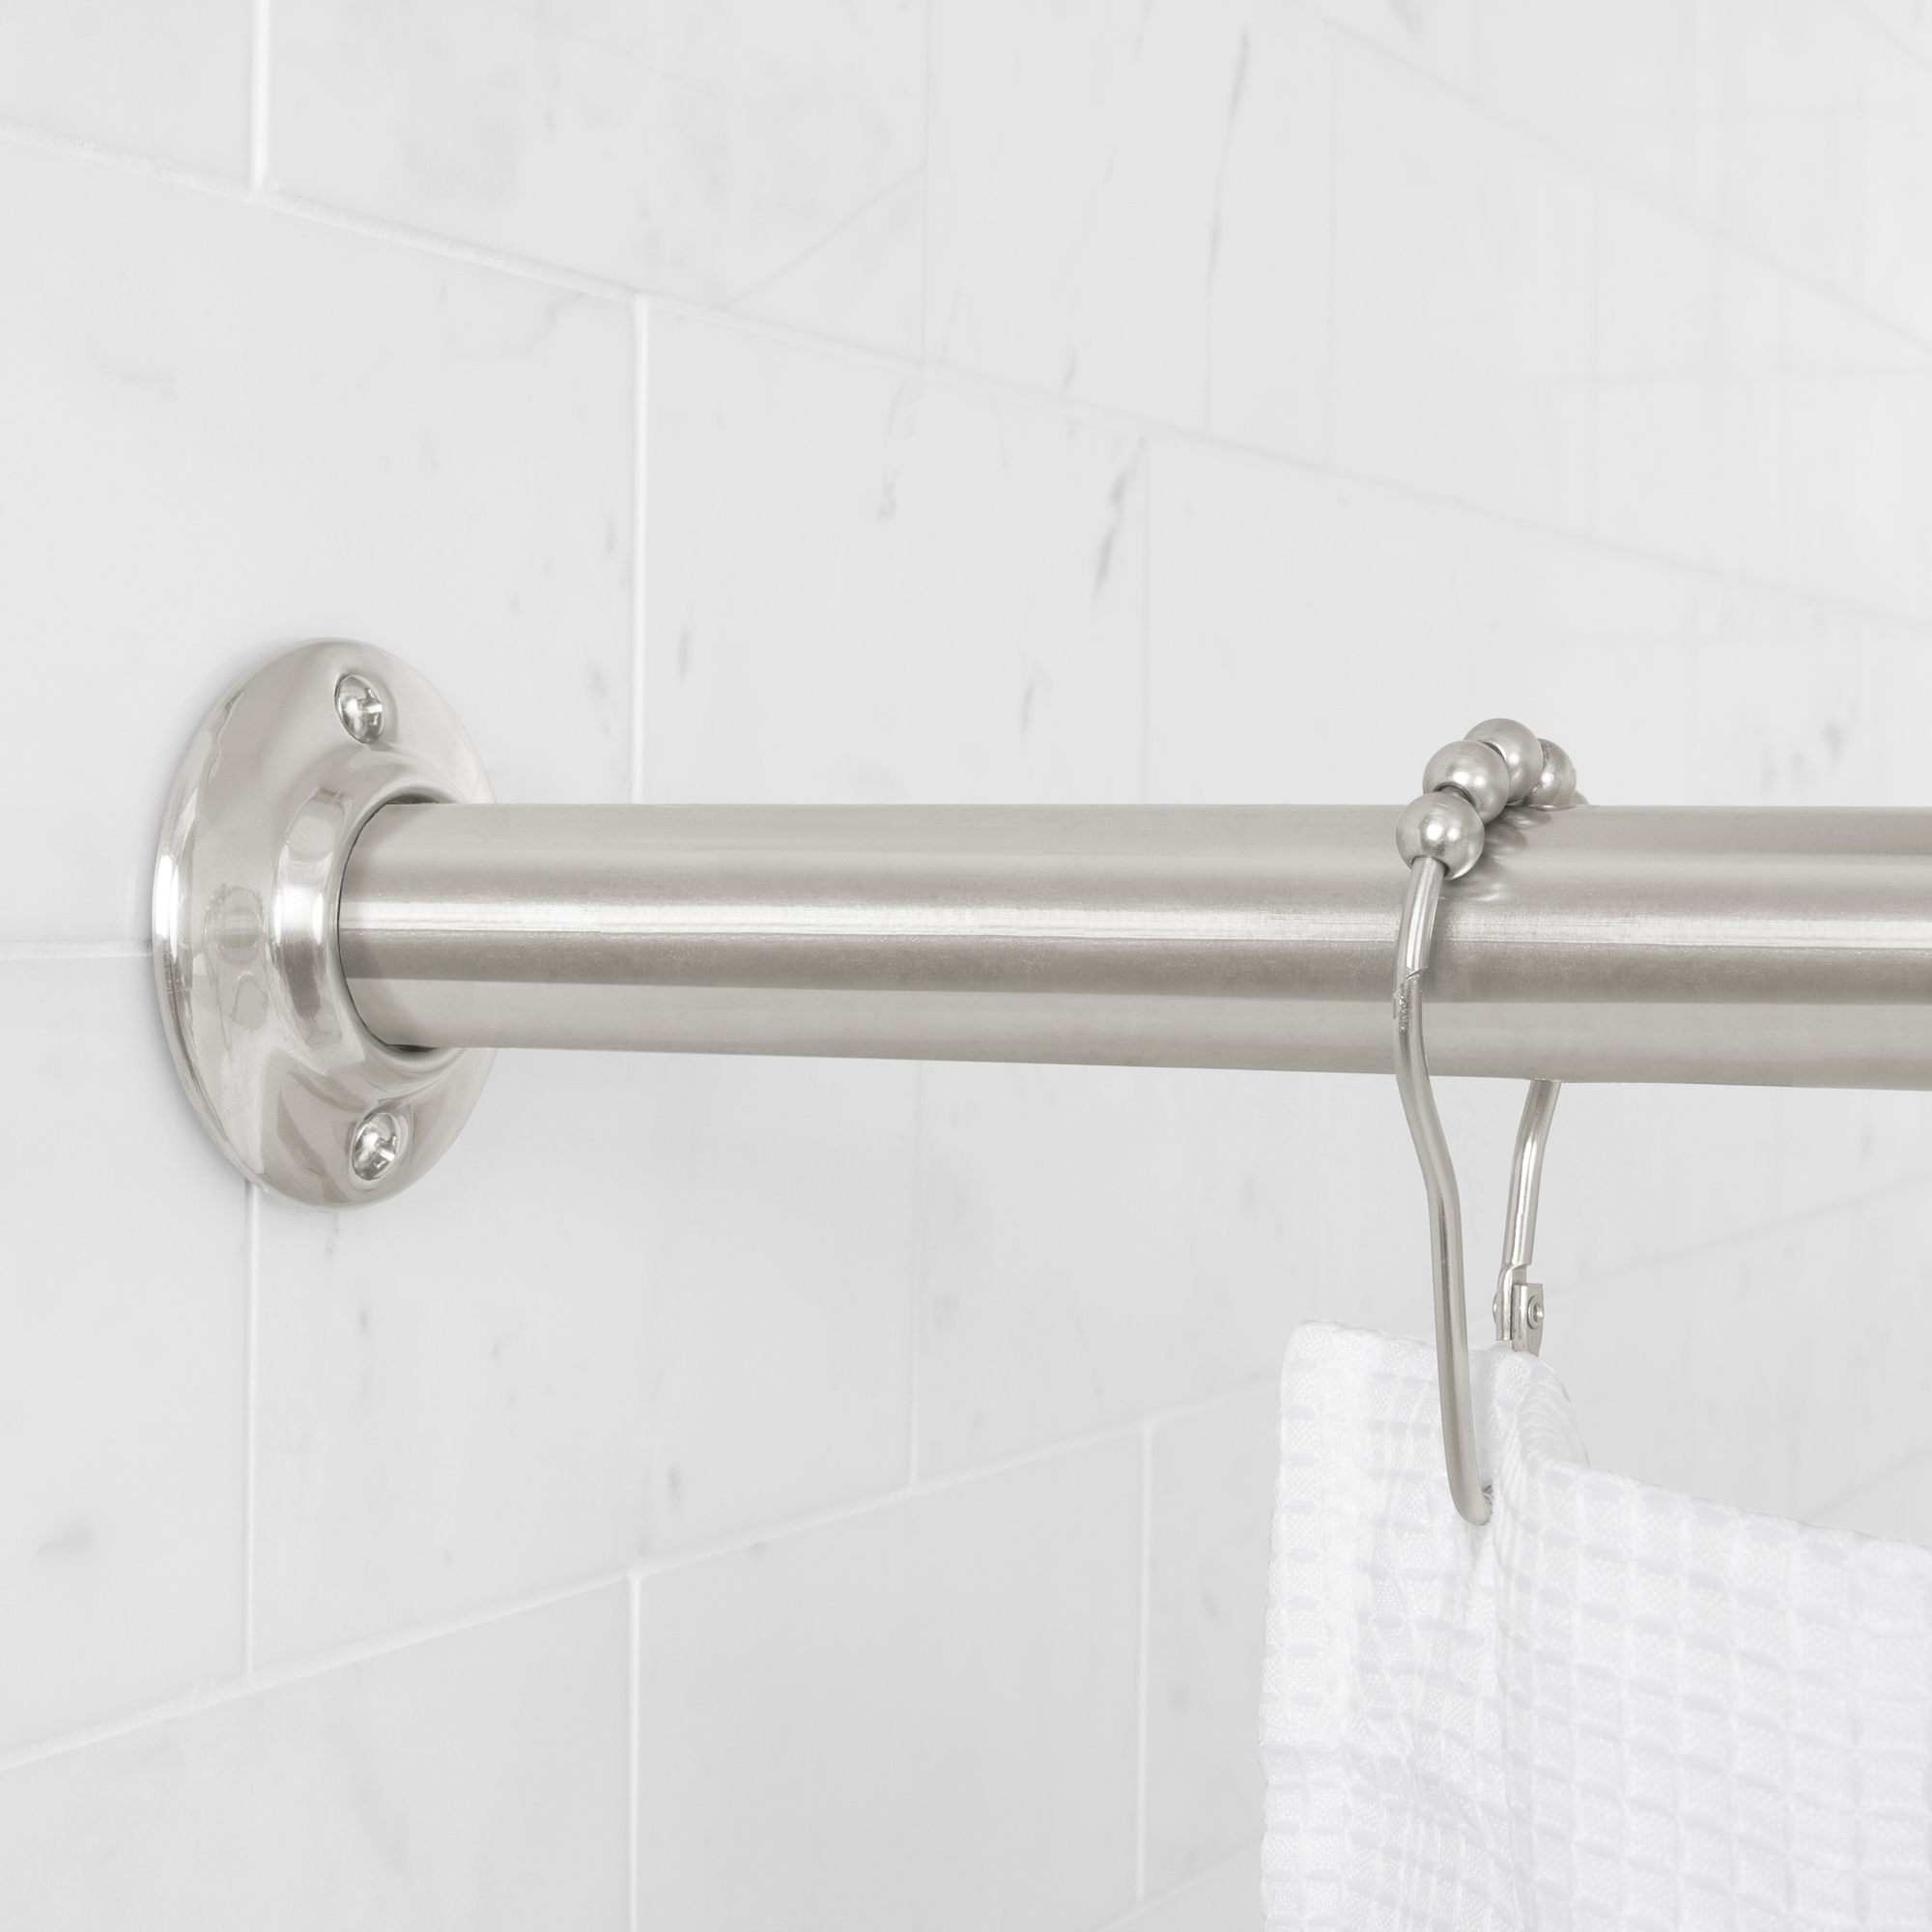 Mainstays Permanent Straight Shower Curtain Rod 41 in – 72 in, Brushed Nickel